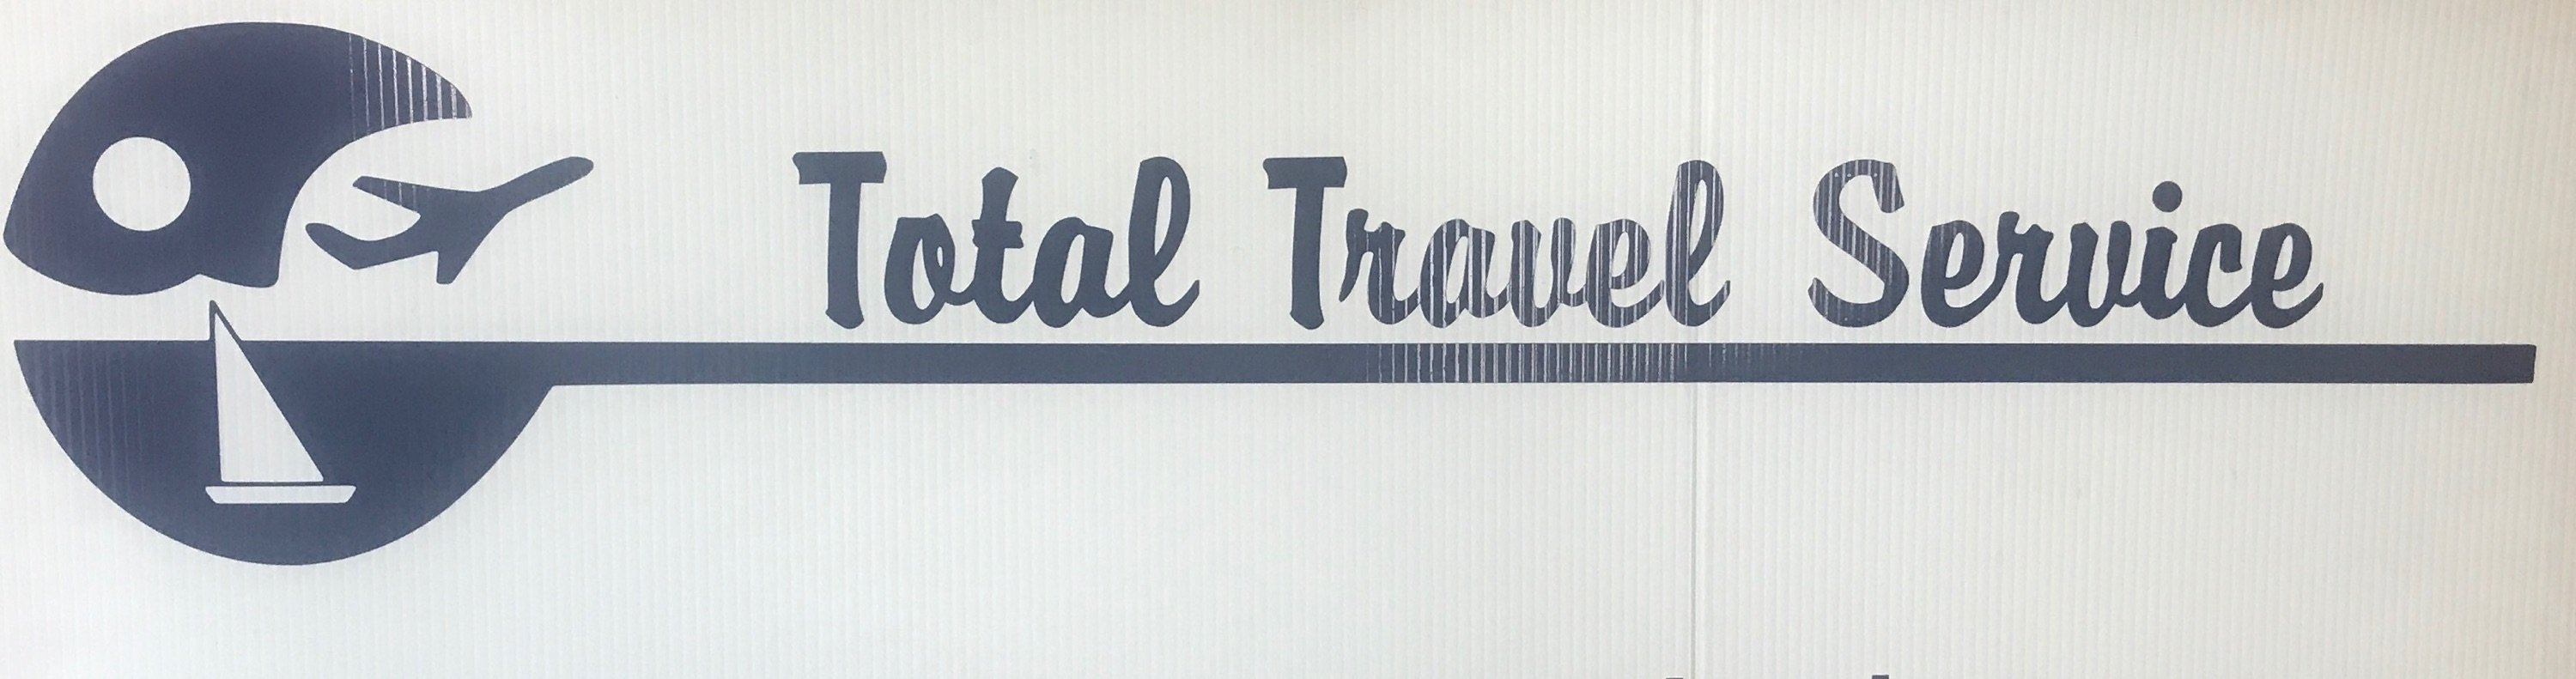 Total Travel Service